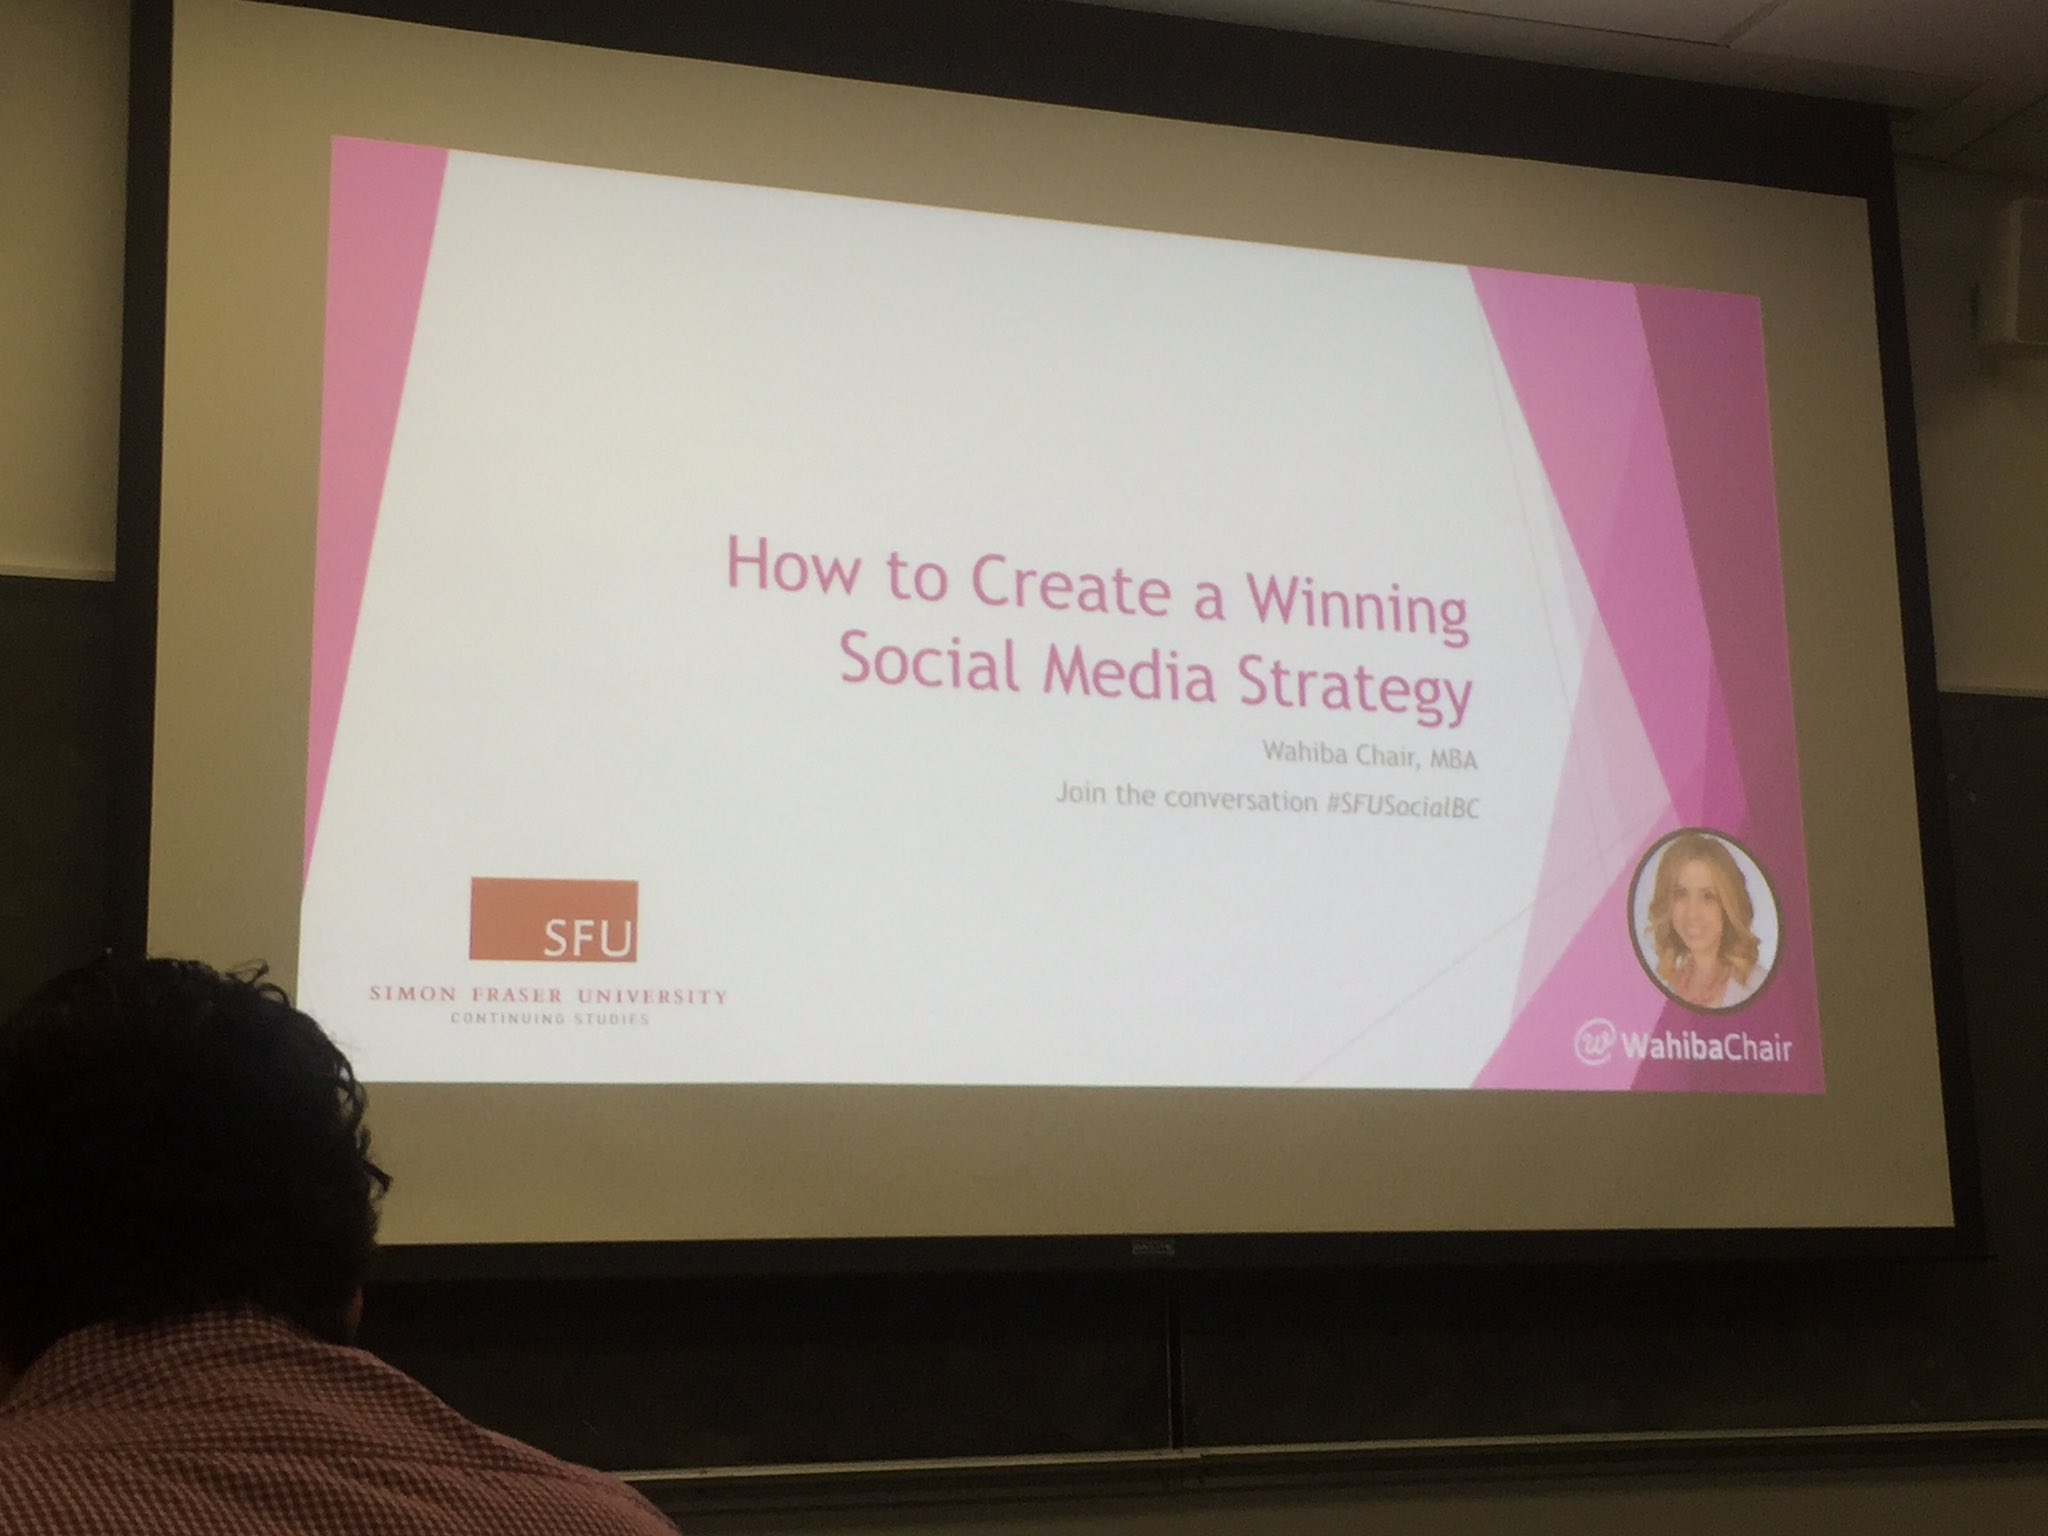 Learning to be more cutting edge from the talented @WahibaChair! So far so good :) #SFUSocialBC https://t.co/pPYvPjMLZV